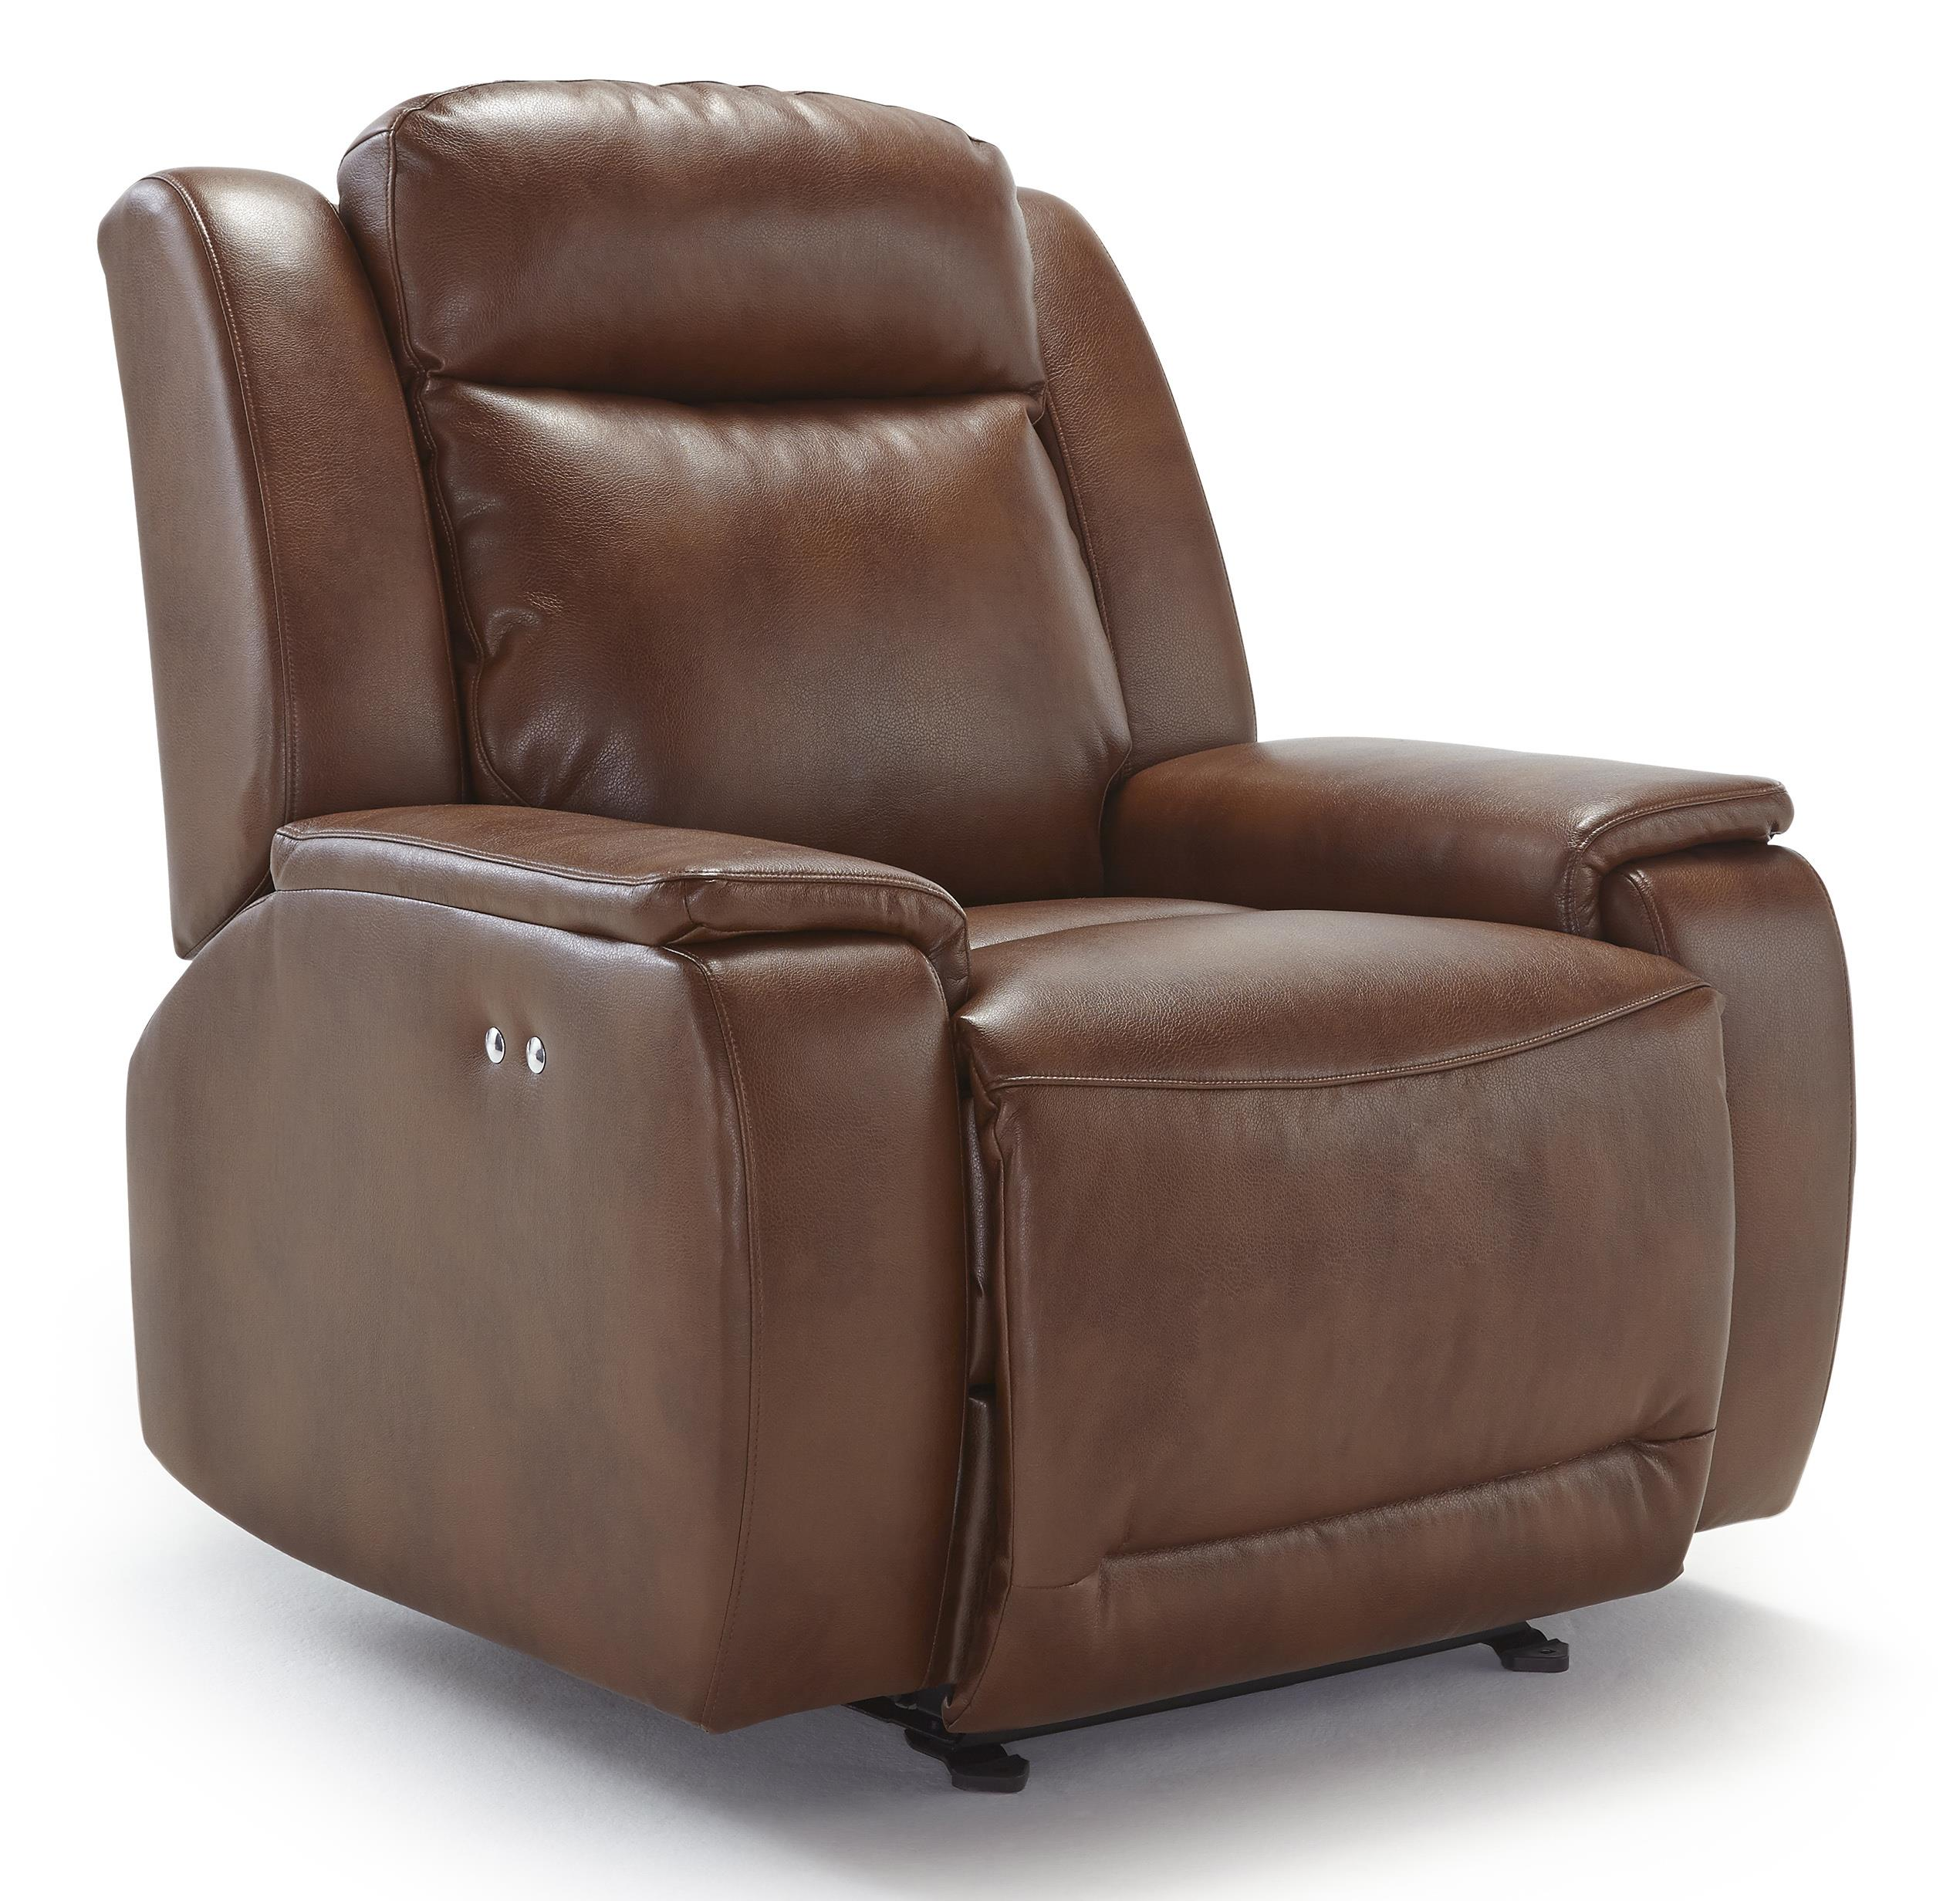 Best Home Furnishings Hardisty Power Space Saver Recliner - Item Number: 6NP84U-26764U